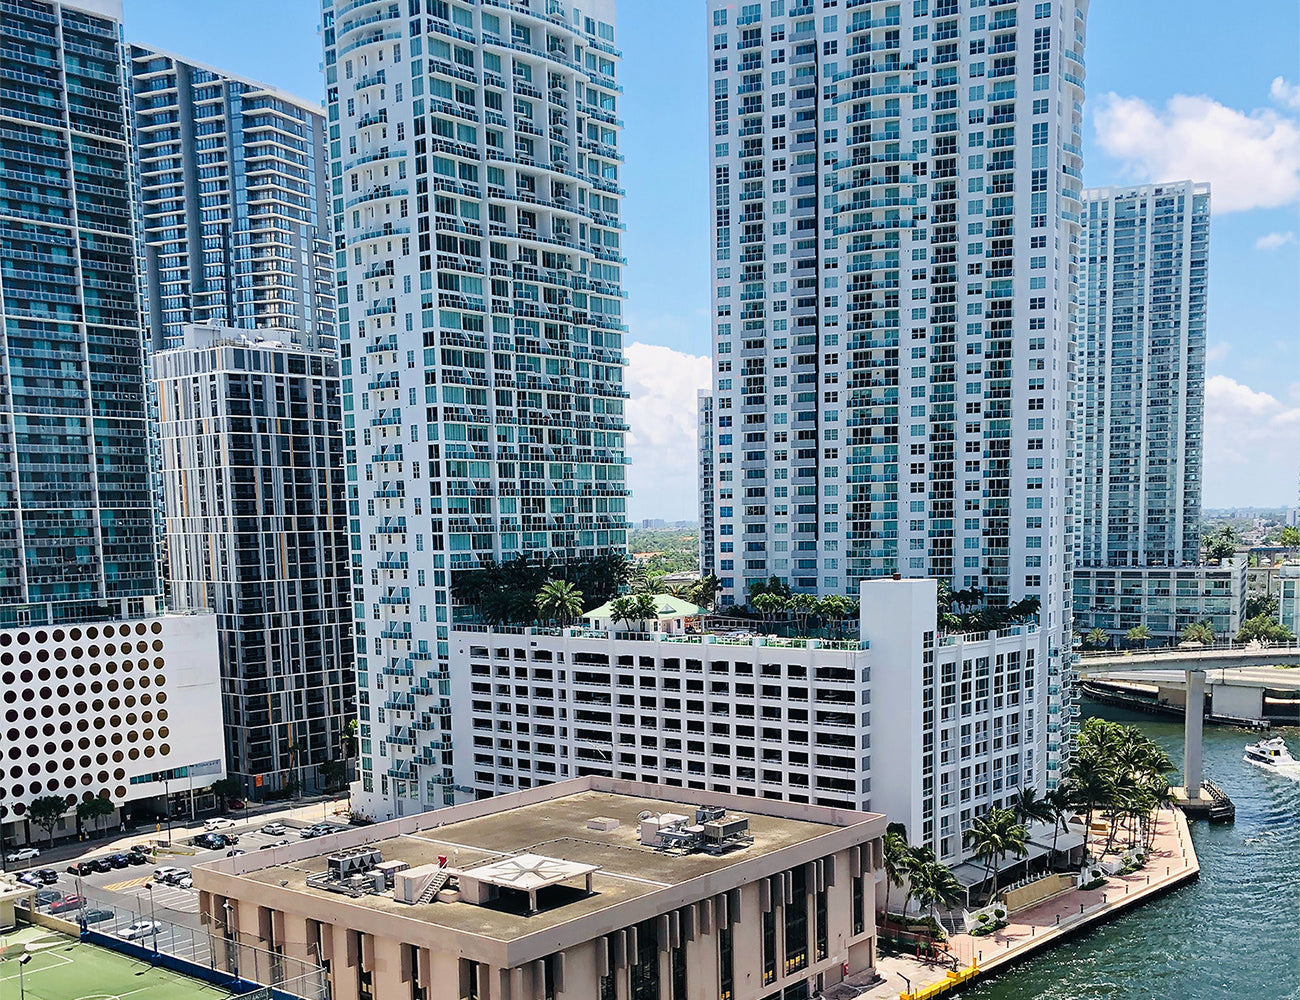 Apartment buildings and condominiums by the water